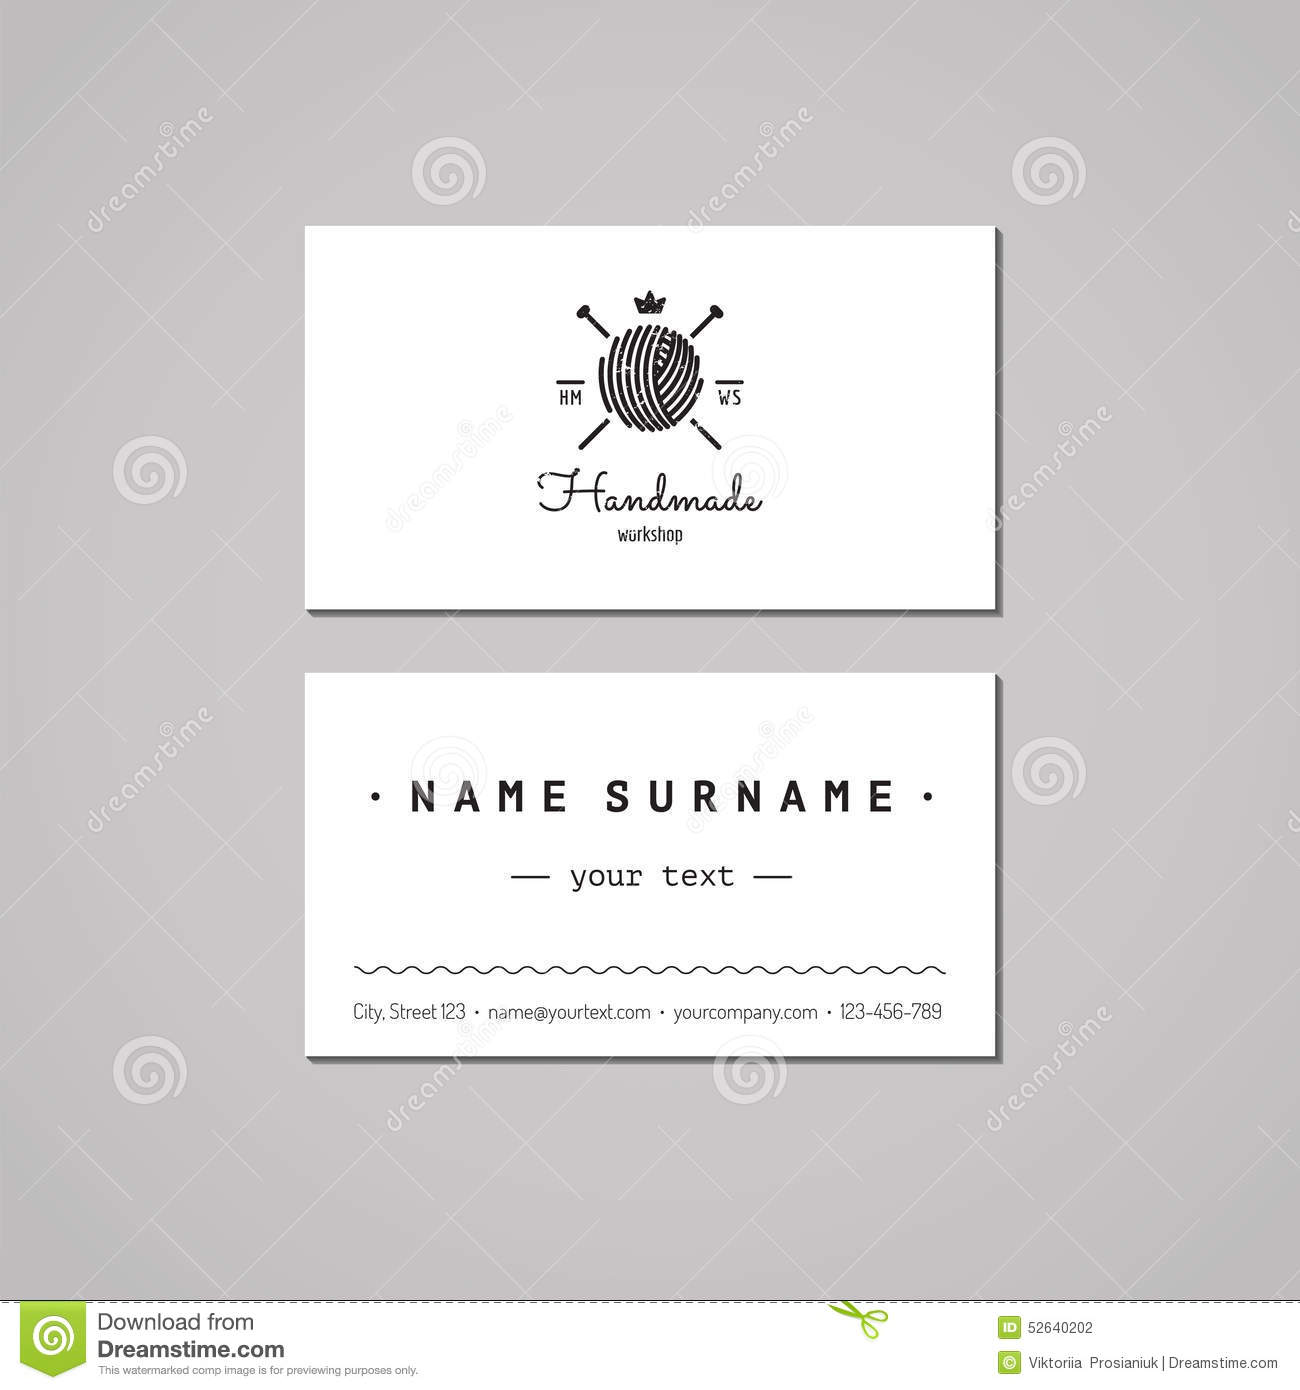 Knitting Logo Business Cards : Handmade workshop business card design concept